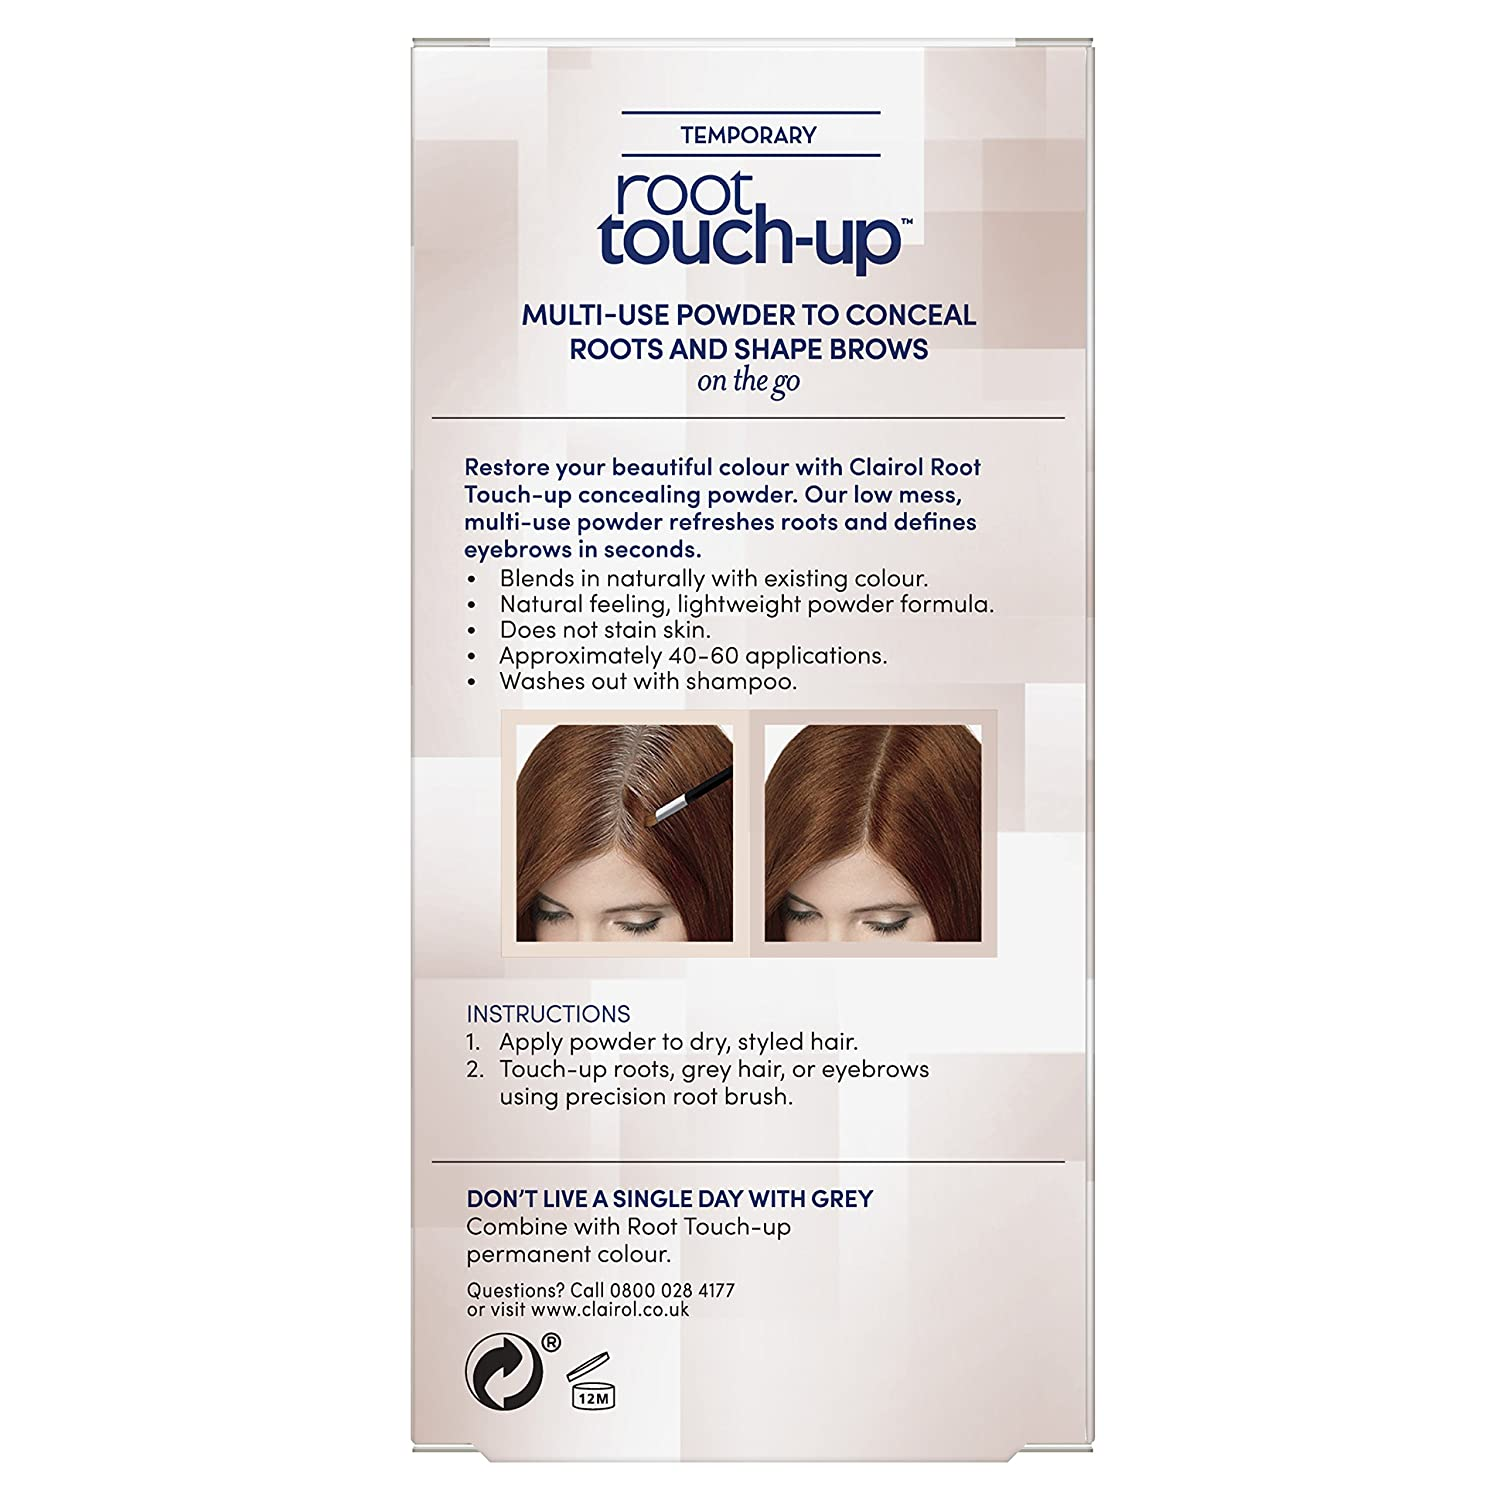 Clairol Root Touch Up Hair Dye Temporary Roots And Eyebrow Powder